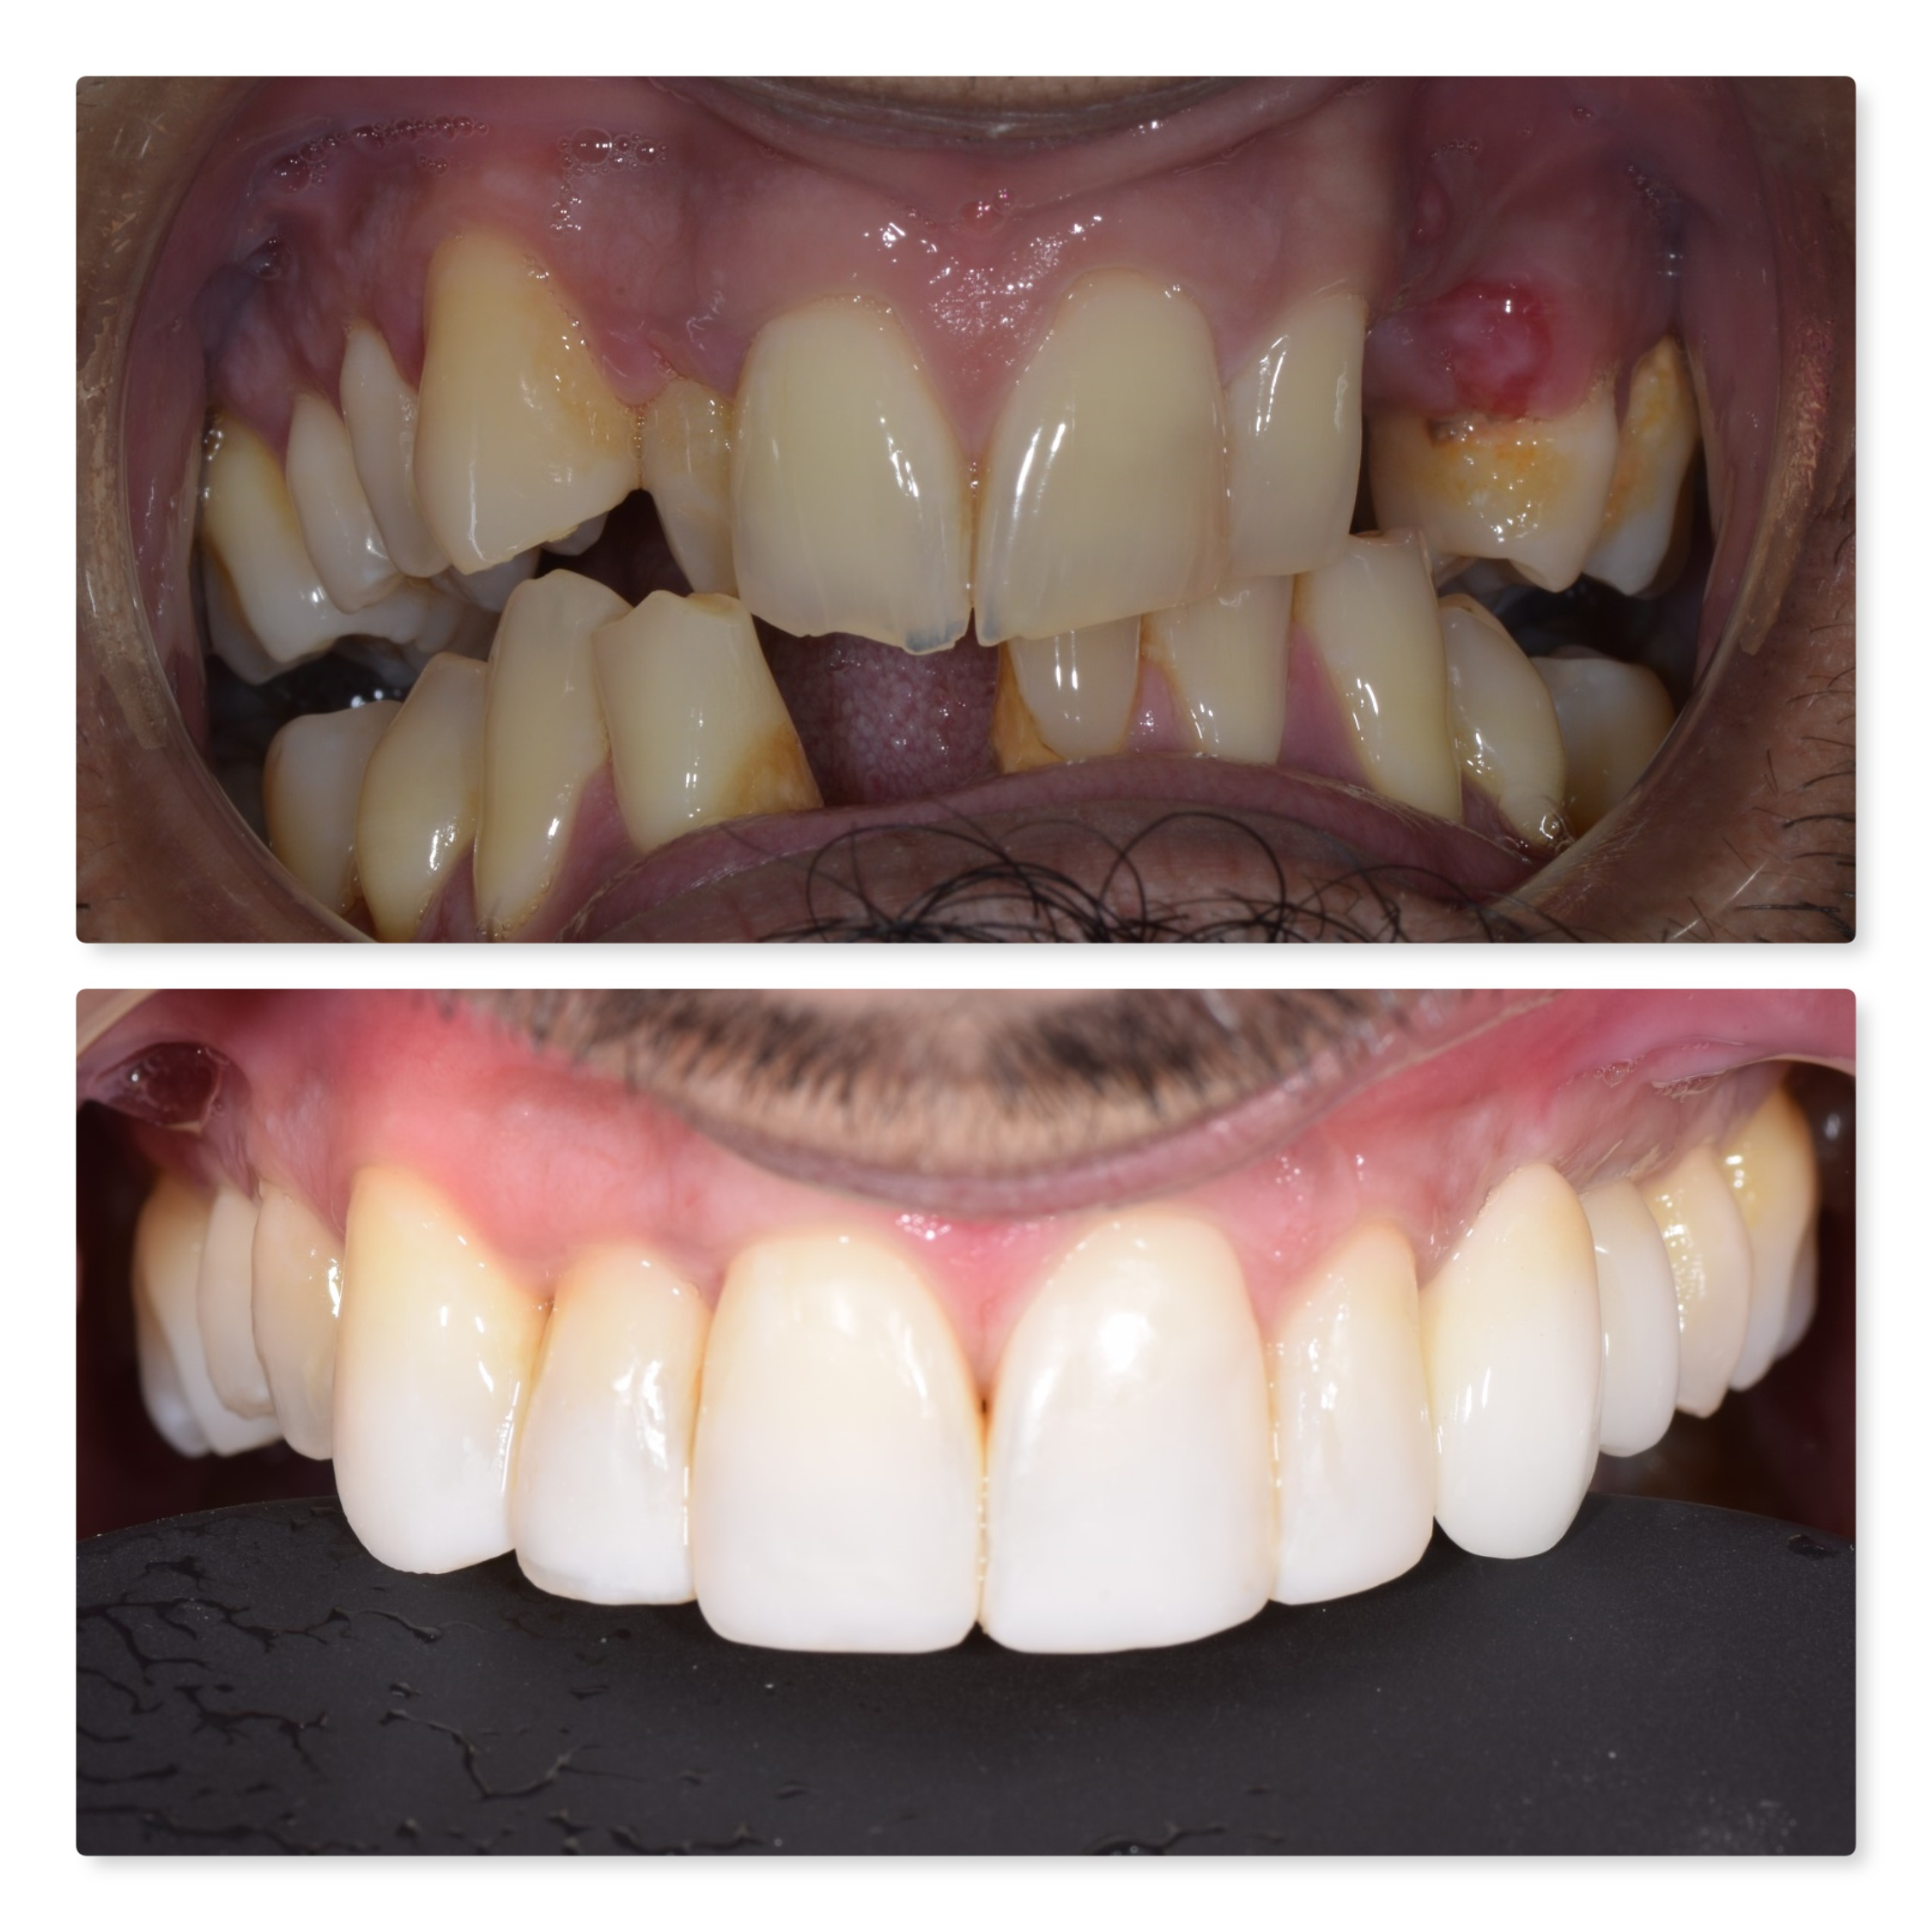 dental implant, whitening and composite bonding